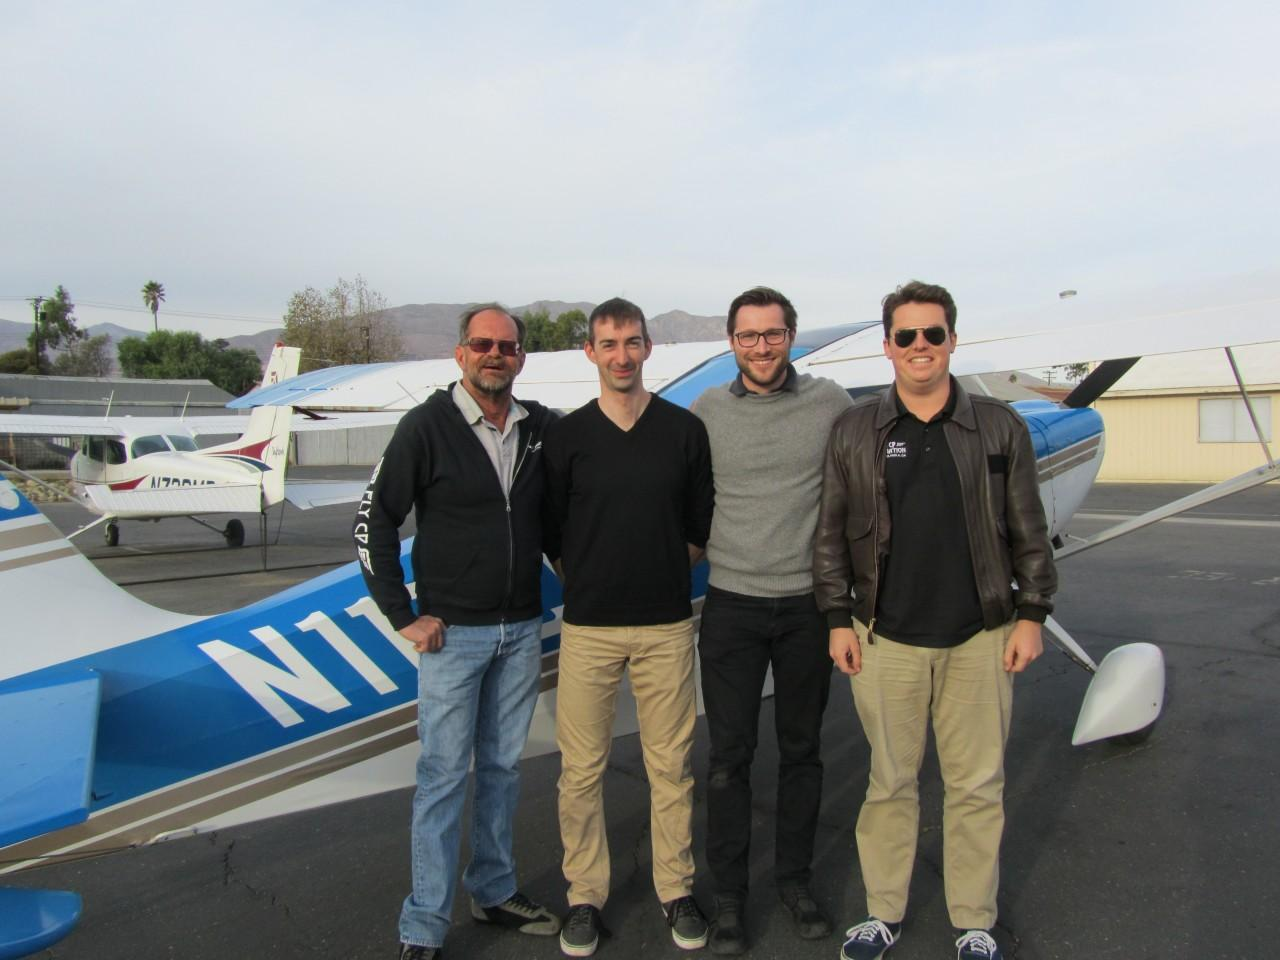 Tailwheel Endorsements and Emergency Maneuver Training Complete!